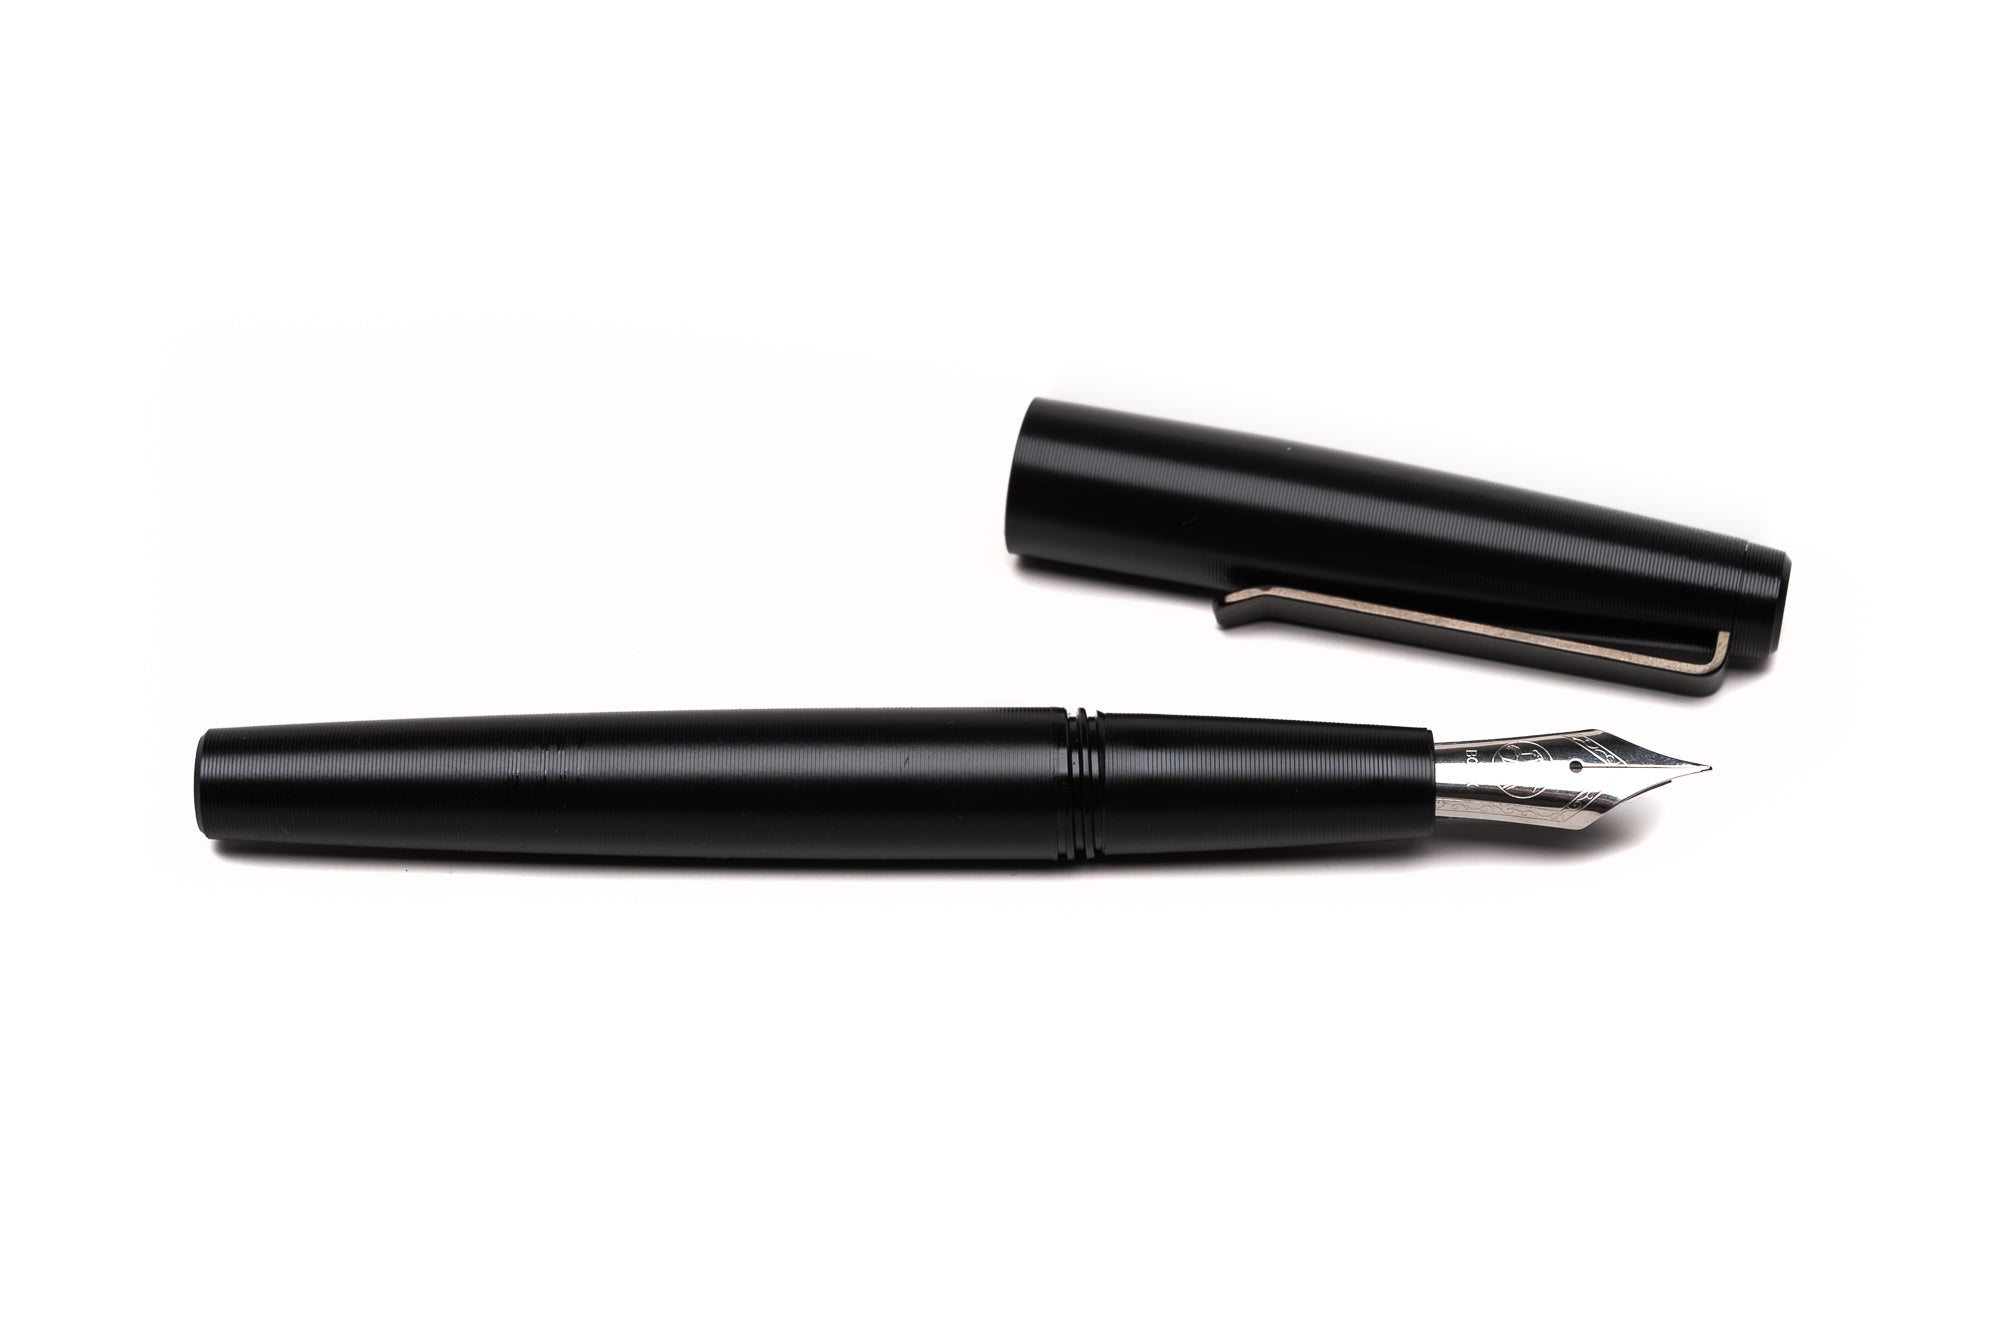 Black Gist Fountain Pen